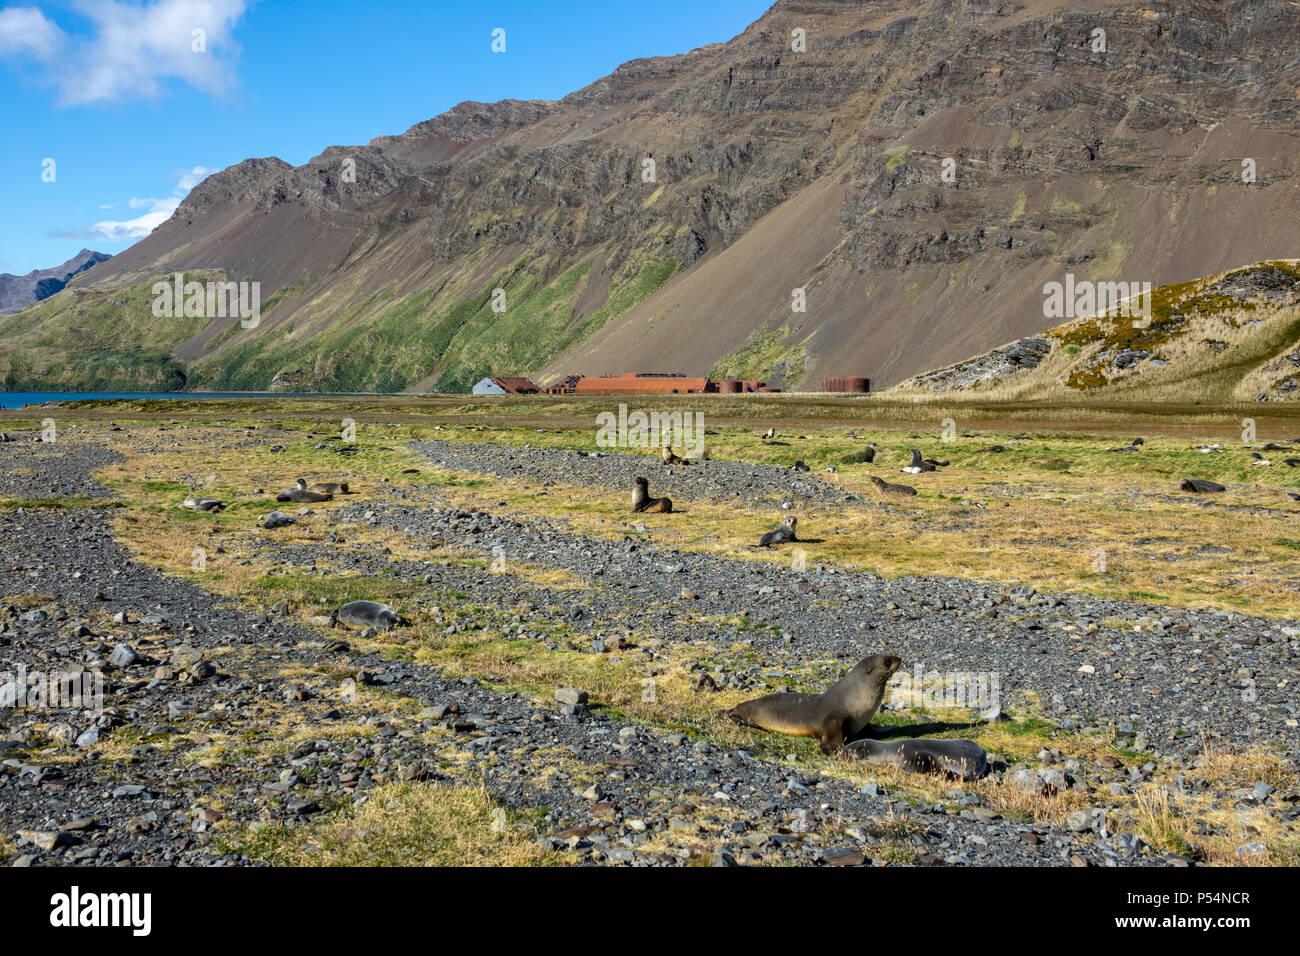 Antarctic fur seals at Stromness Whaling Station, South Georgia Island - Stock Image